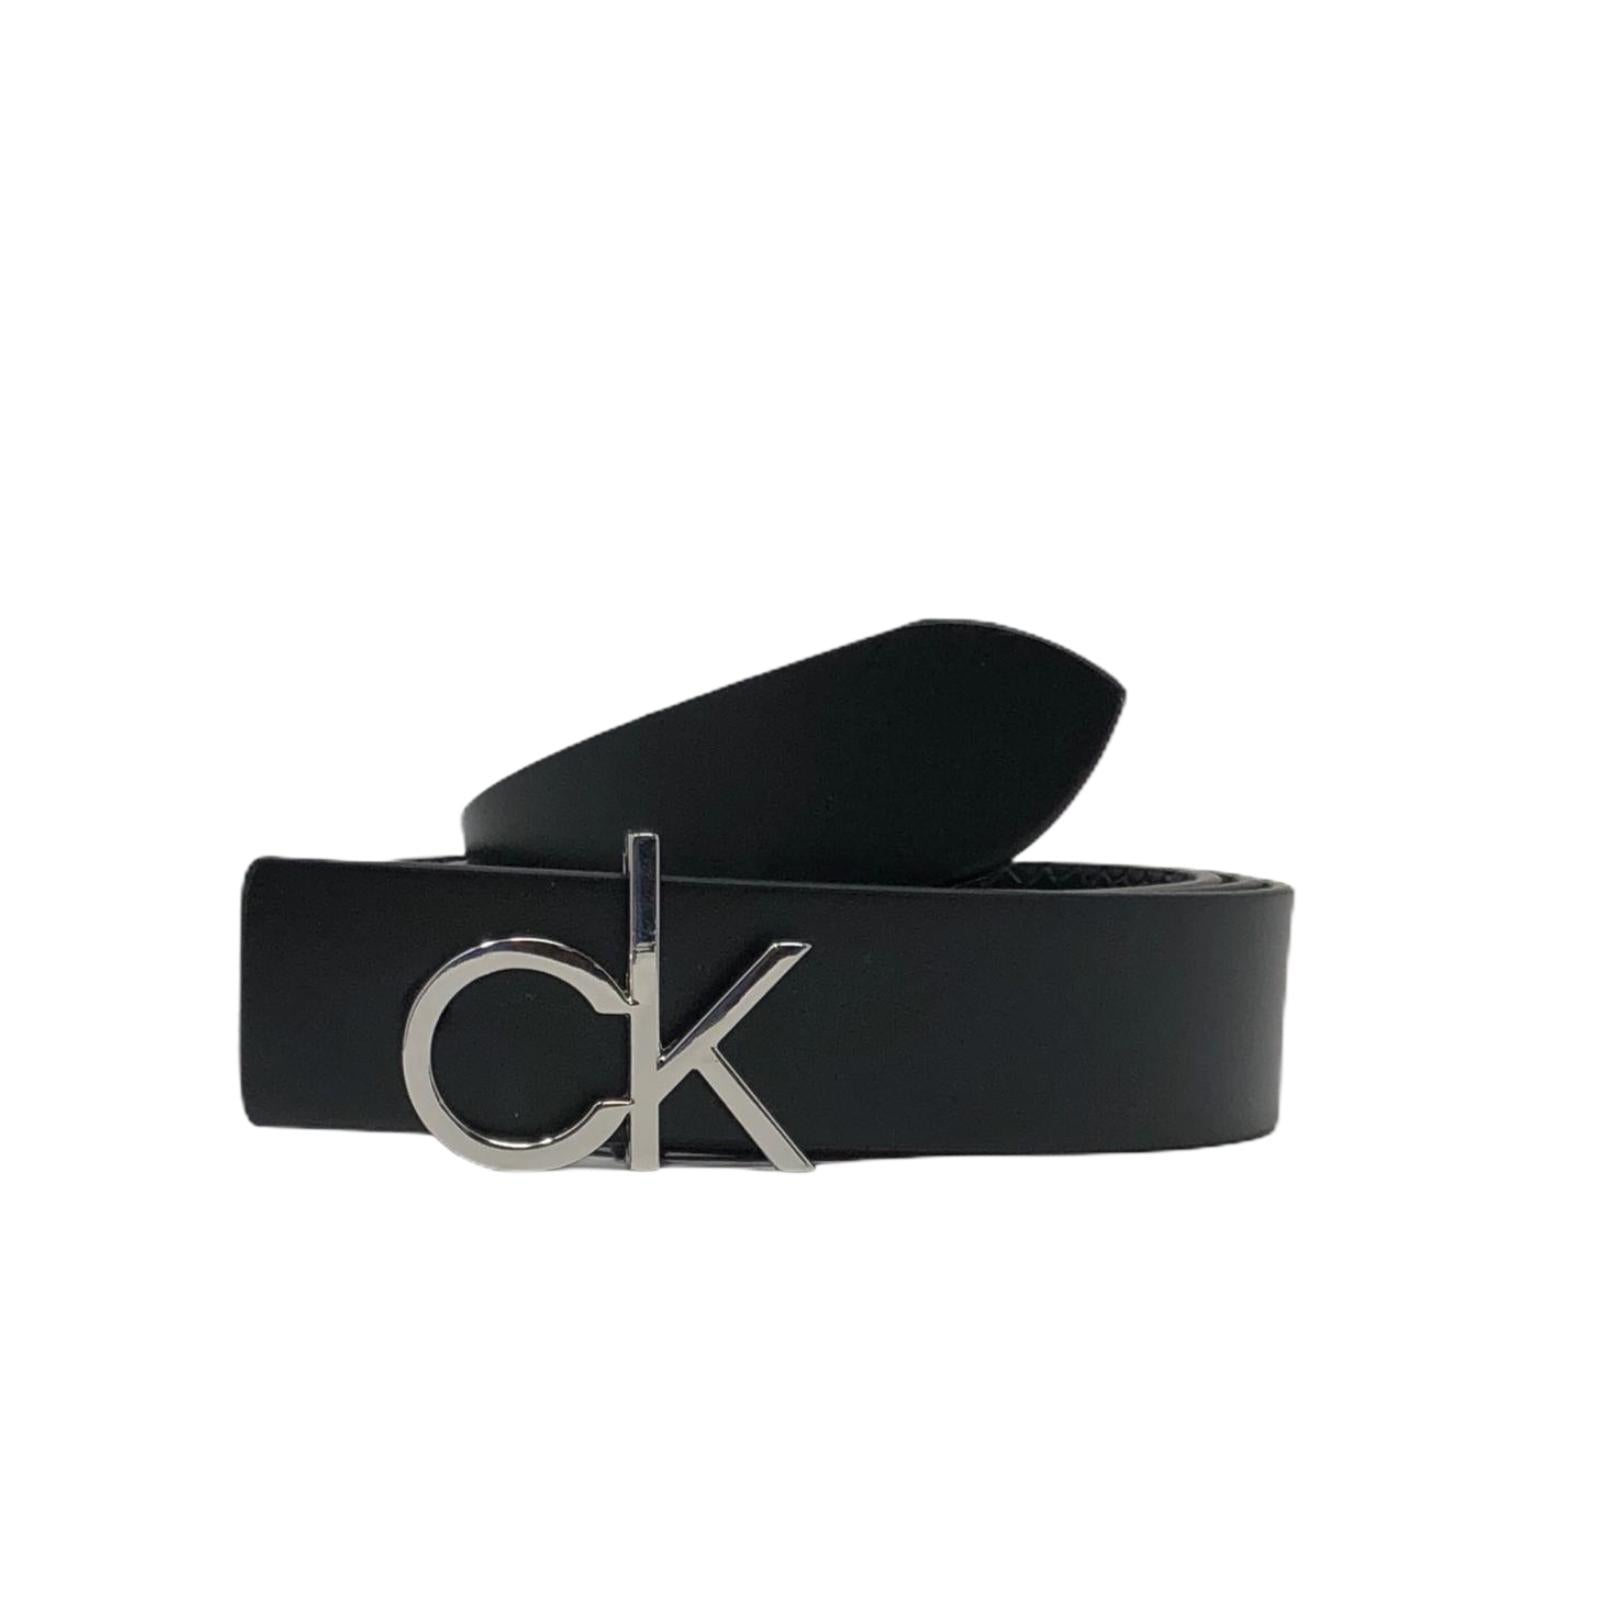 Cintura Calvin Klein Nera Belt Riv Genuine Leather